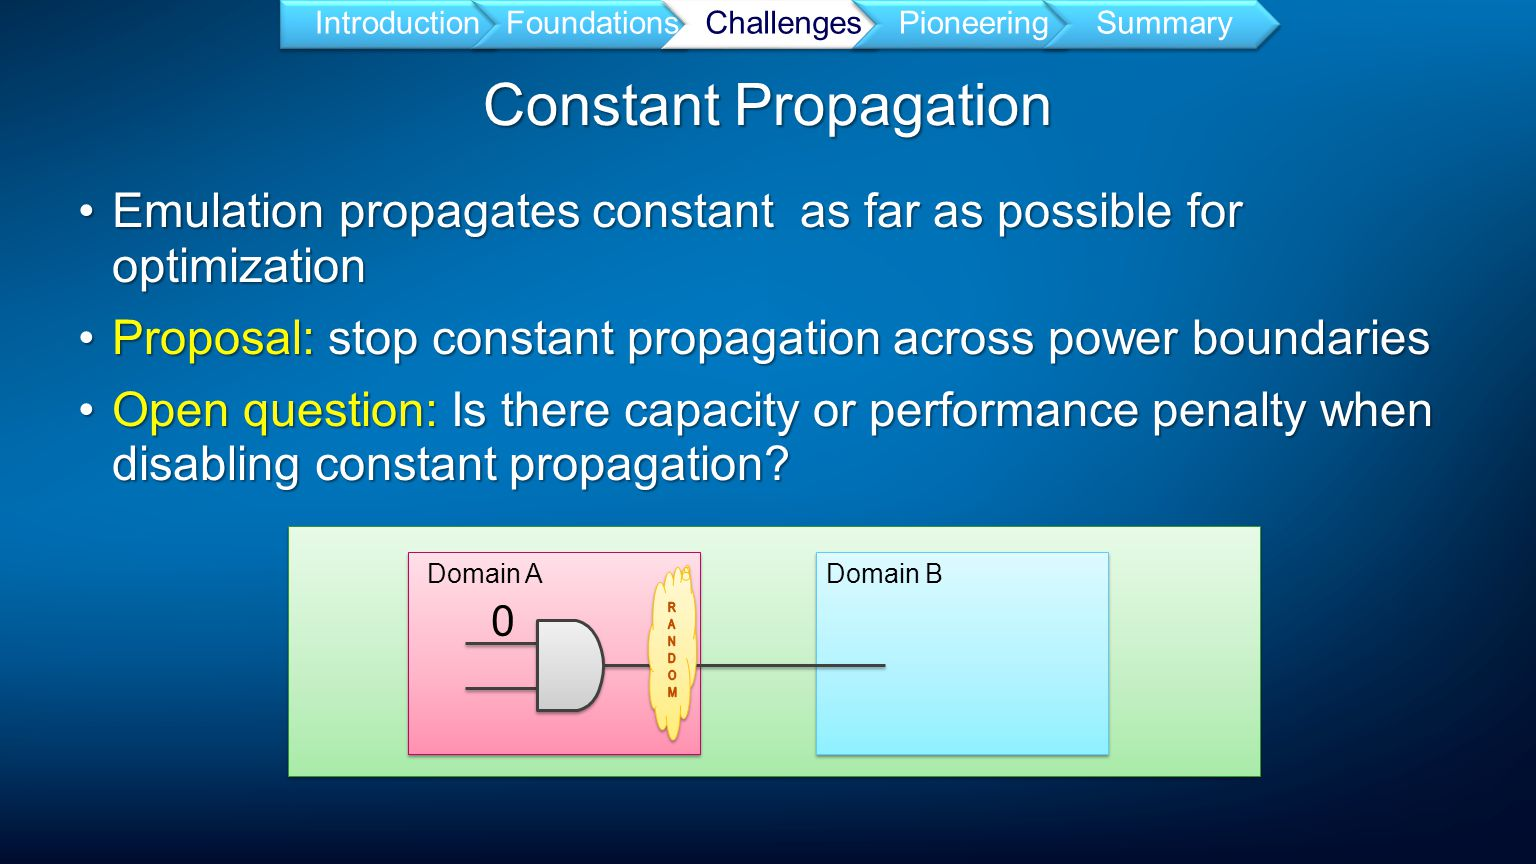 Constant Propagation Emulation propagates constant as far as possible for optimizationEmulation propagates constant as far as possible for optimization Proposal: stop constant propagation across power boundariesProposal: stop constant propagation across power boundaries Open question: Is there capacity or performance penalty when disabling constant propagation Open question: Is there capacity or performance penalty when disabling constant propagation.